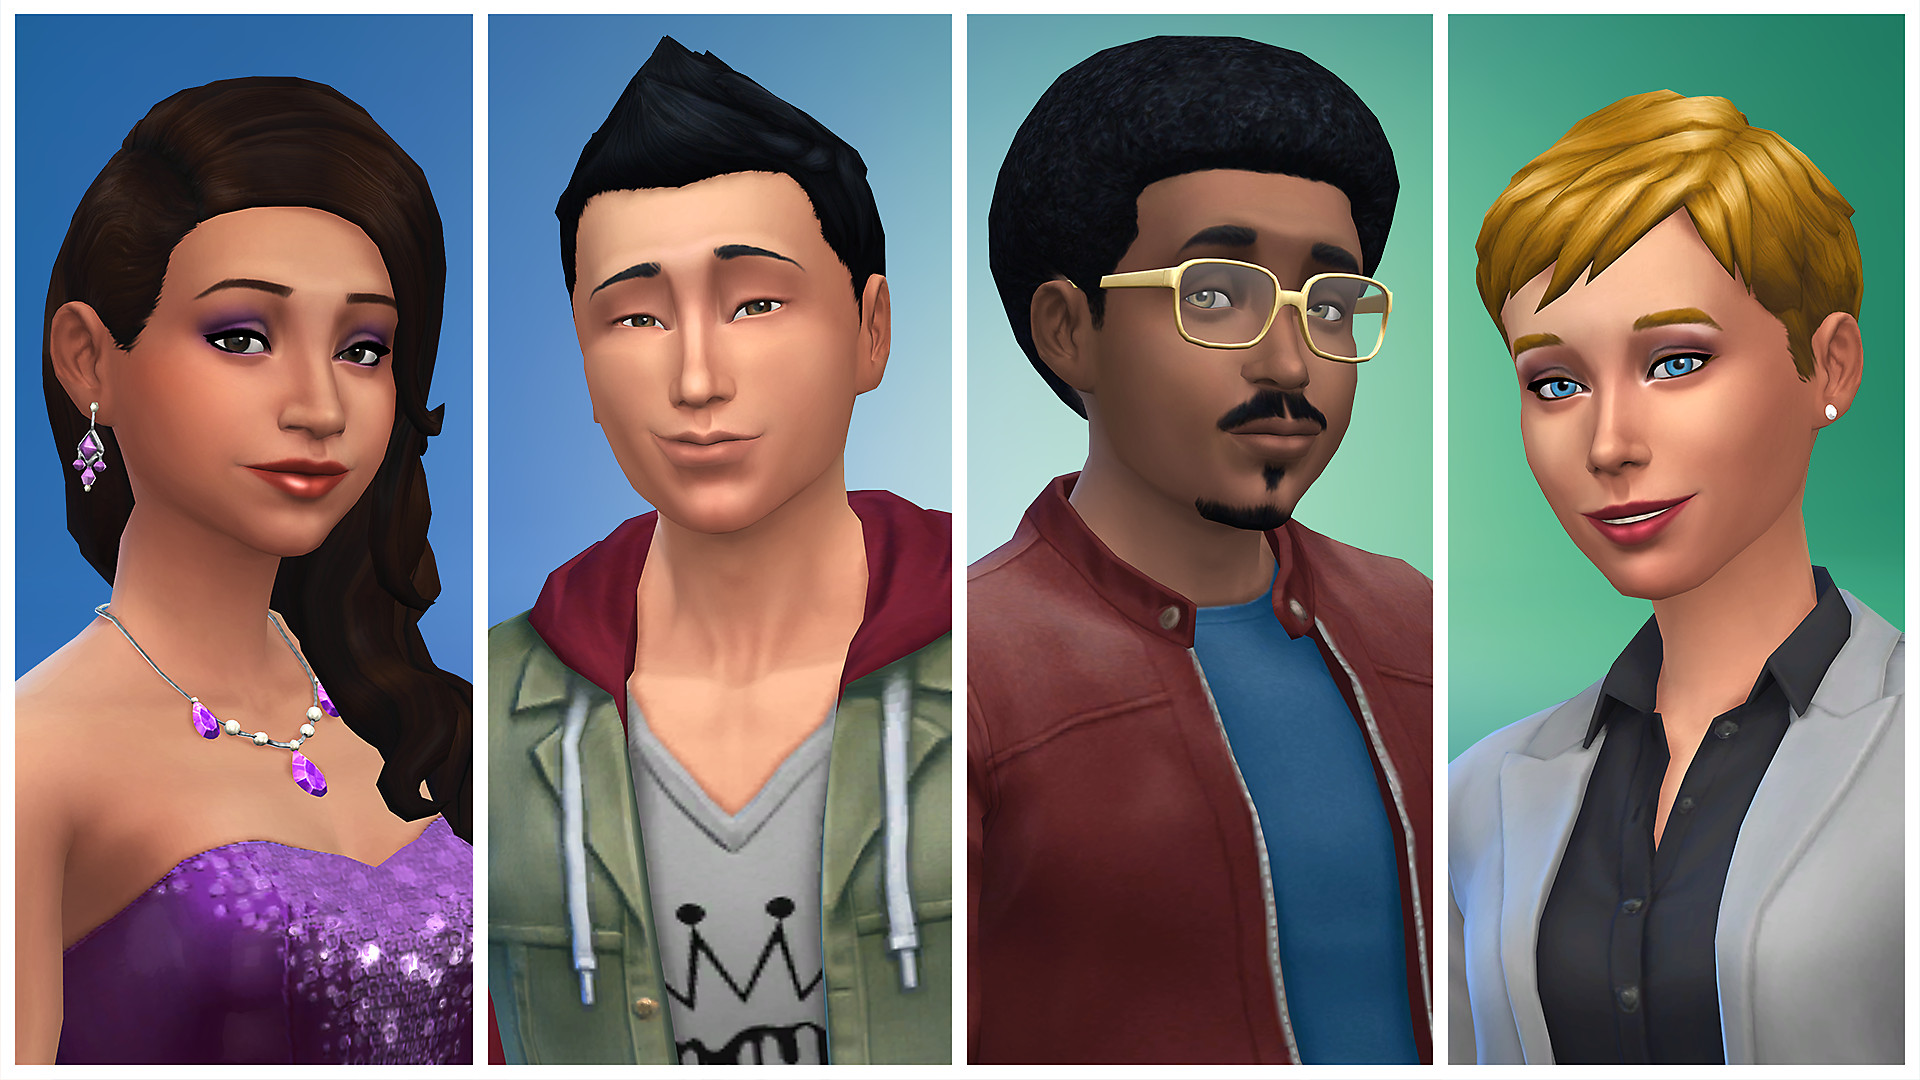 Sims 4 - Customize Your Characters